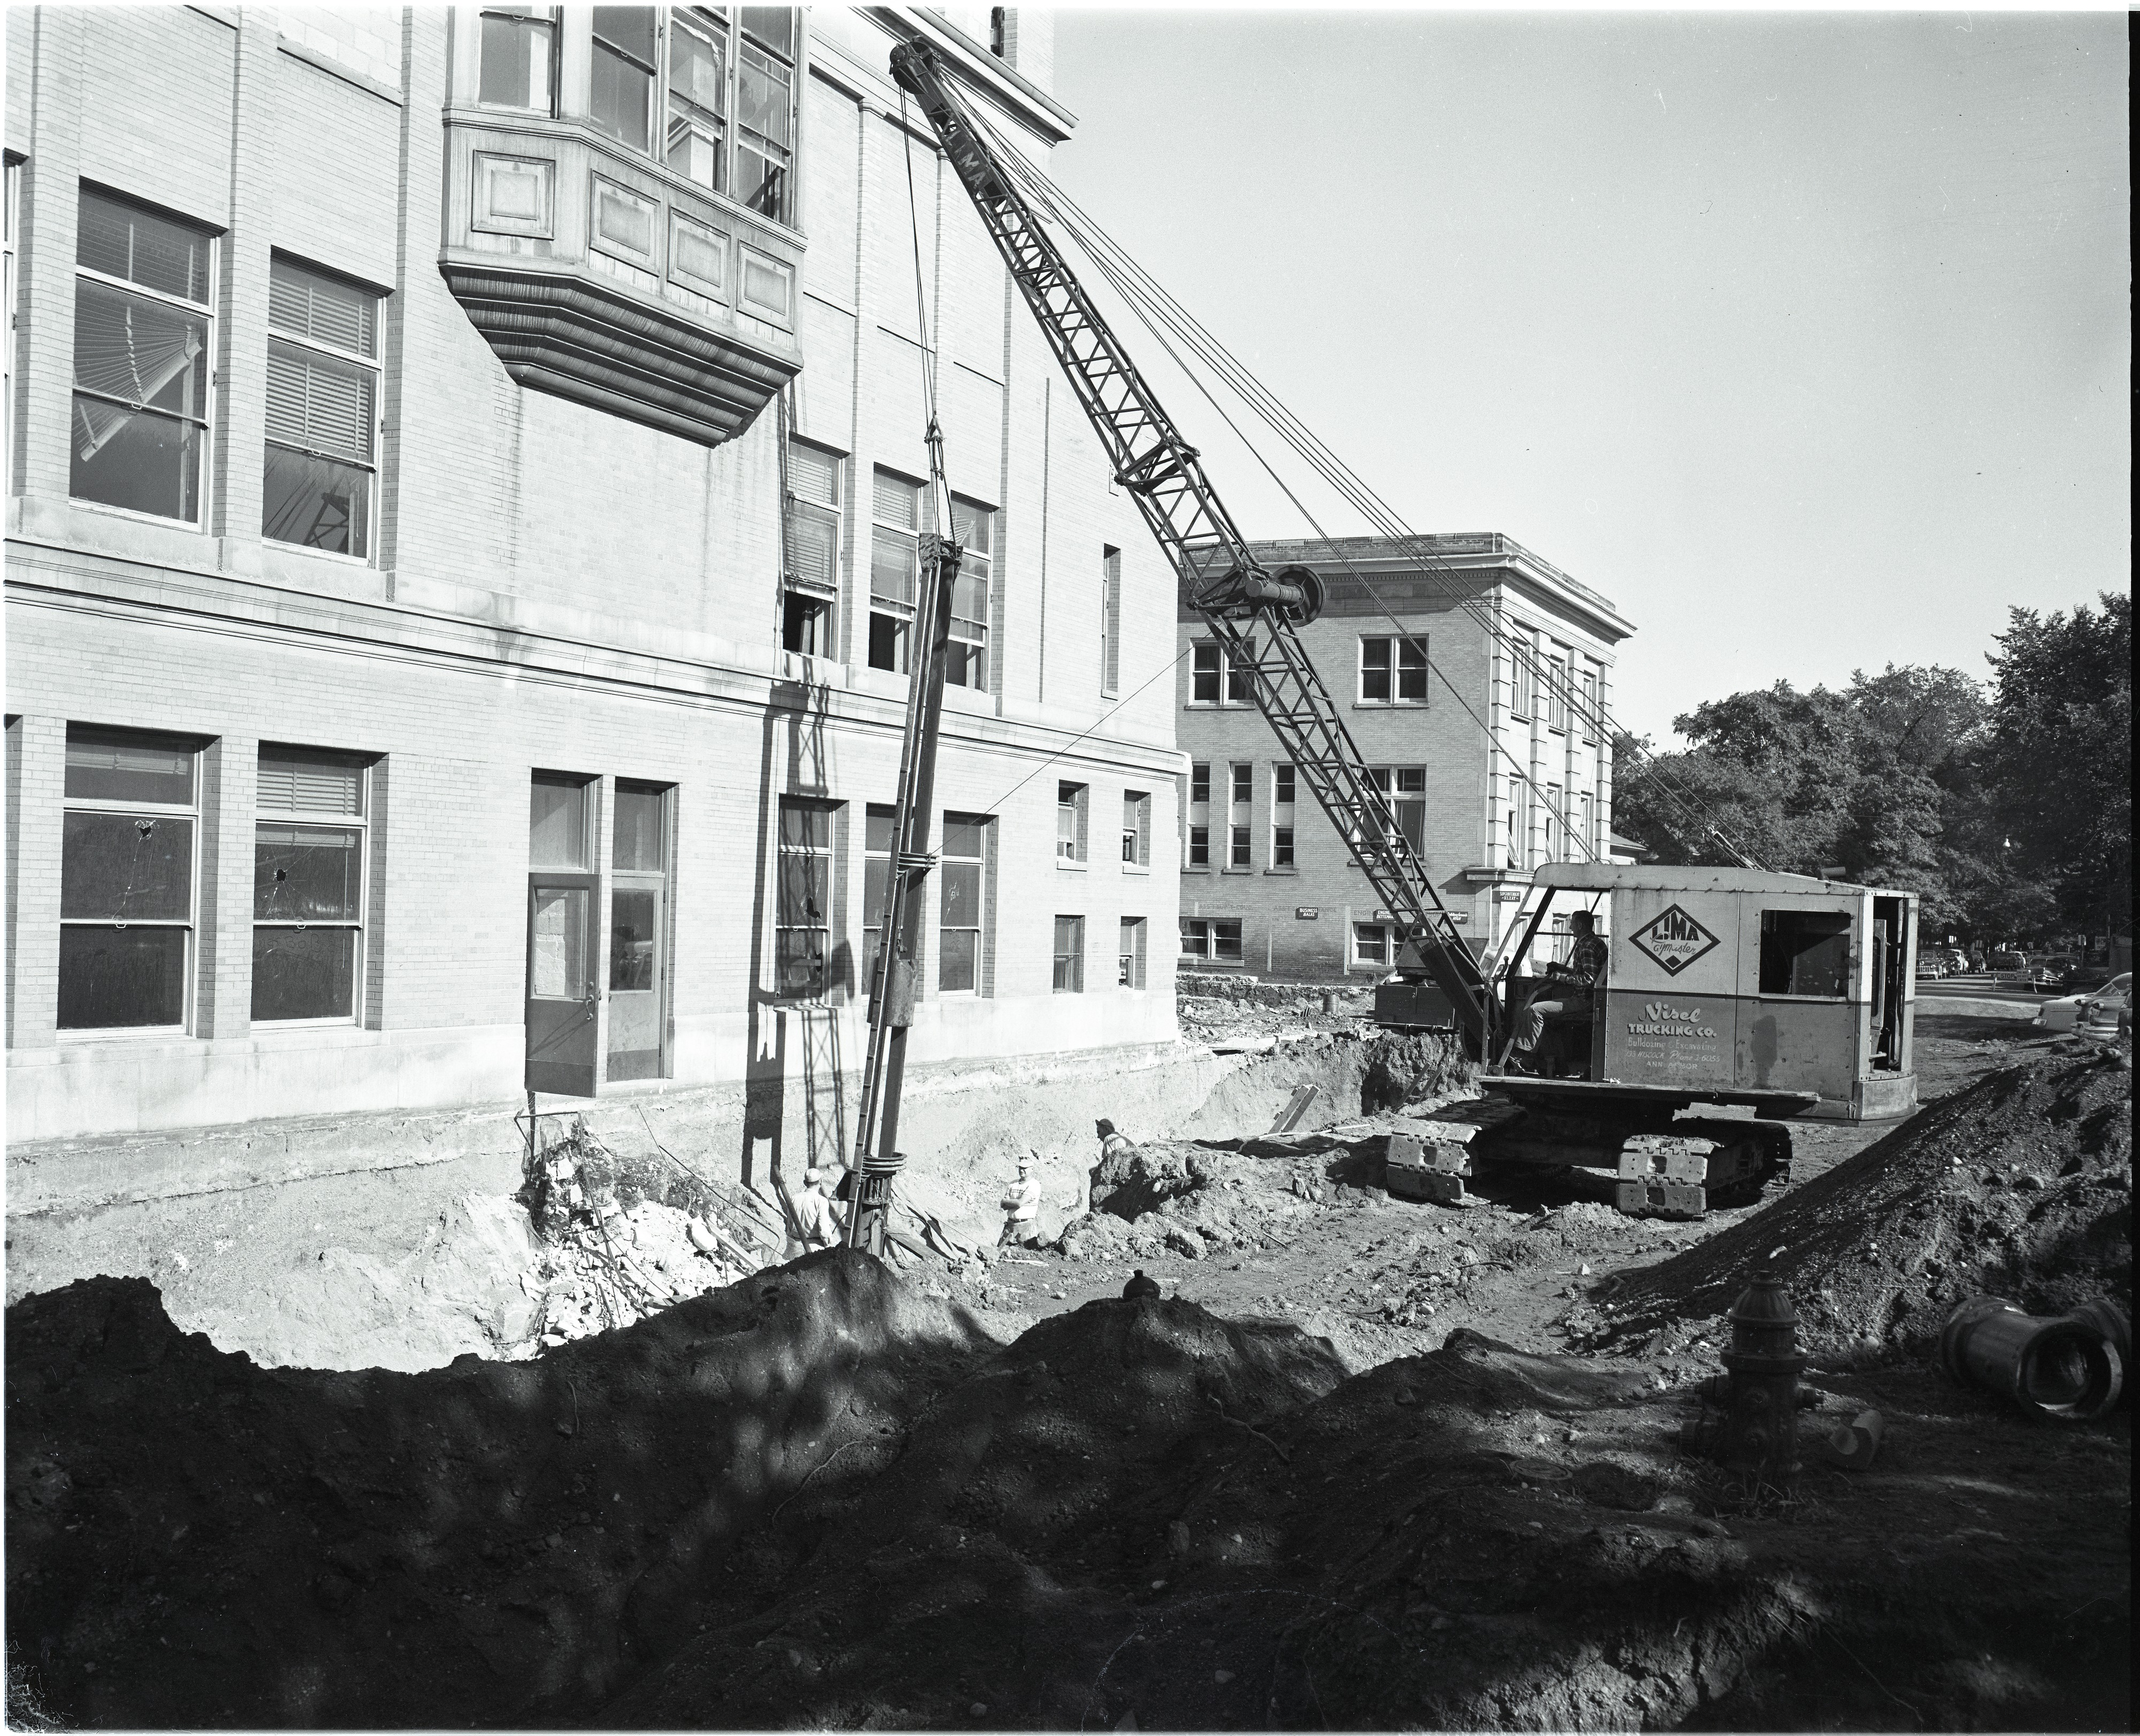 Digging Tunnel in Rear of University of Michigan Frieze Hall, August 1956 image